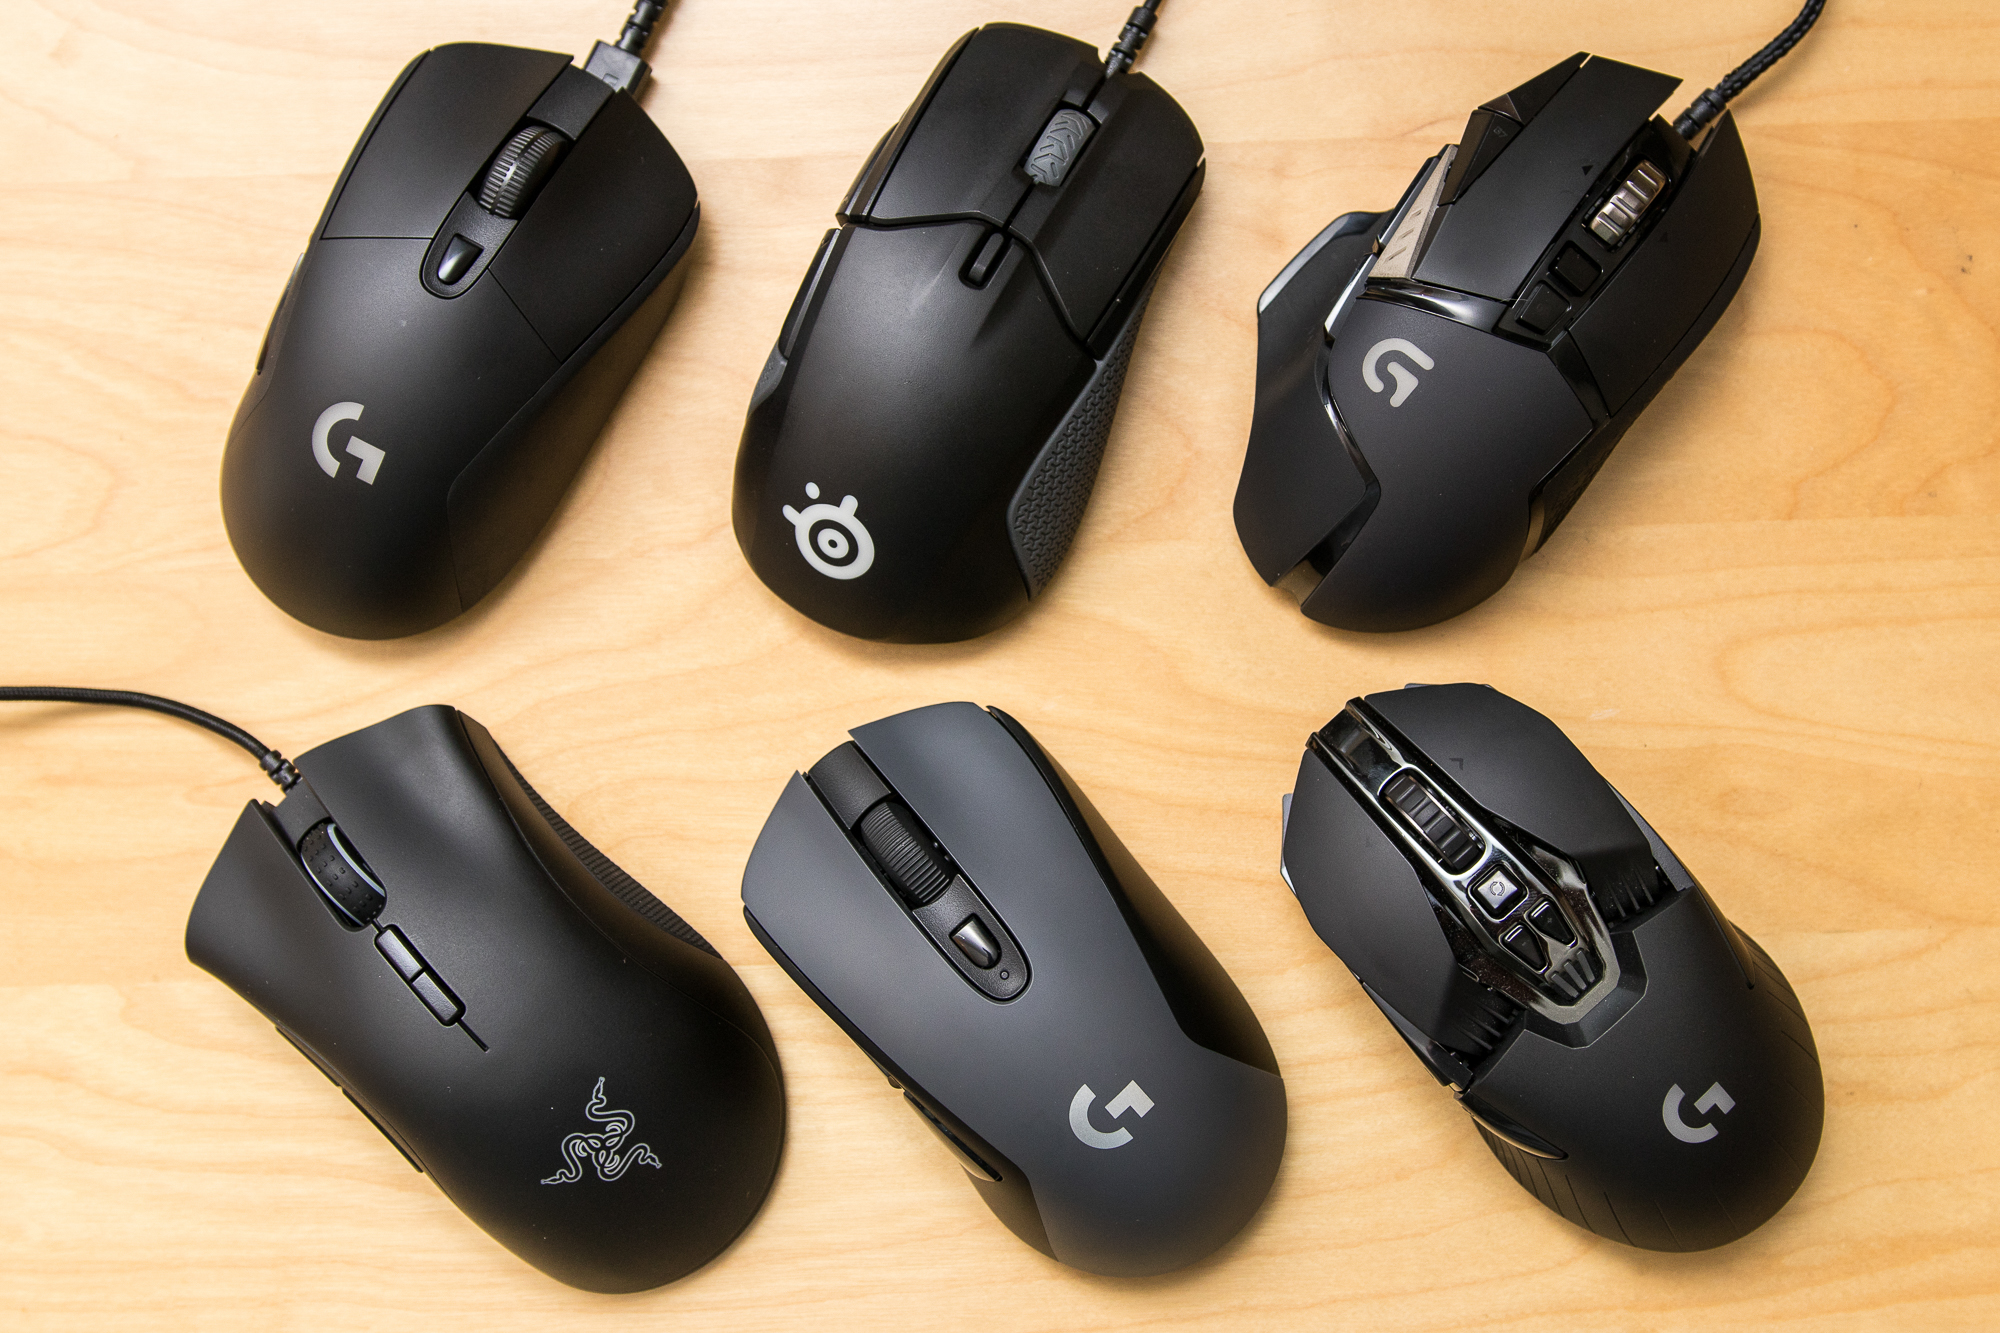 ae0ea04731c We tested wired and wireless gaming mice. Some looked like they belong on  Batman's utility belt and others were hardly any different than normal mice.